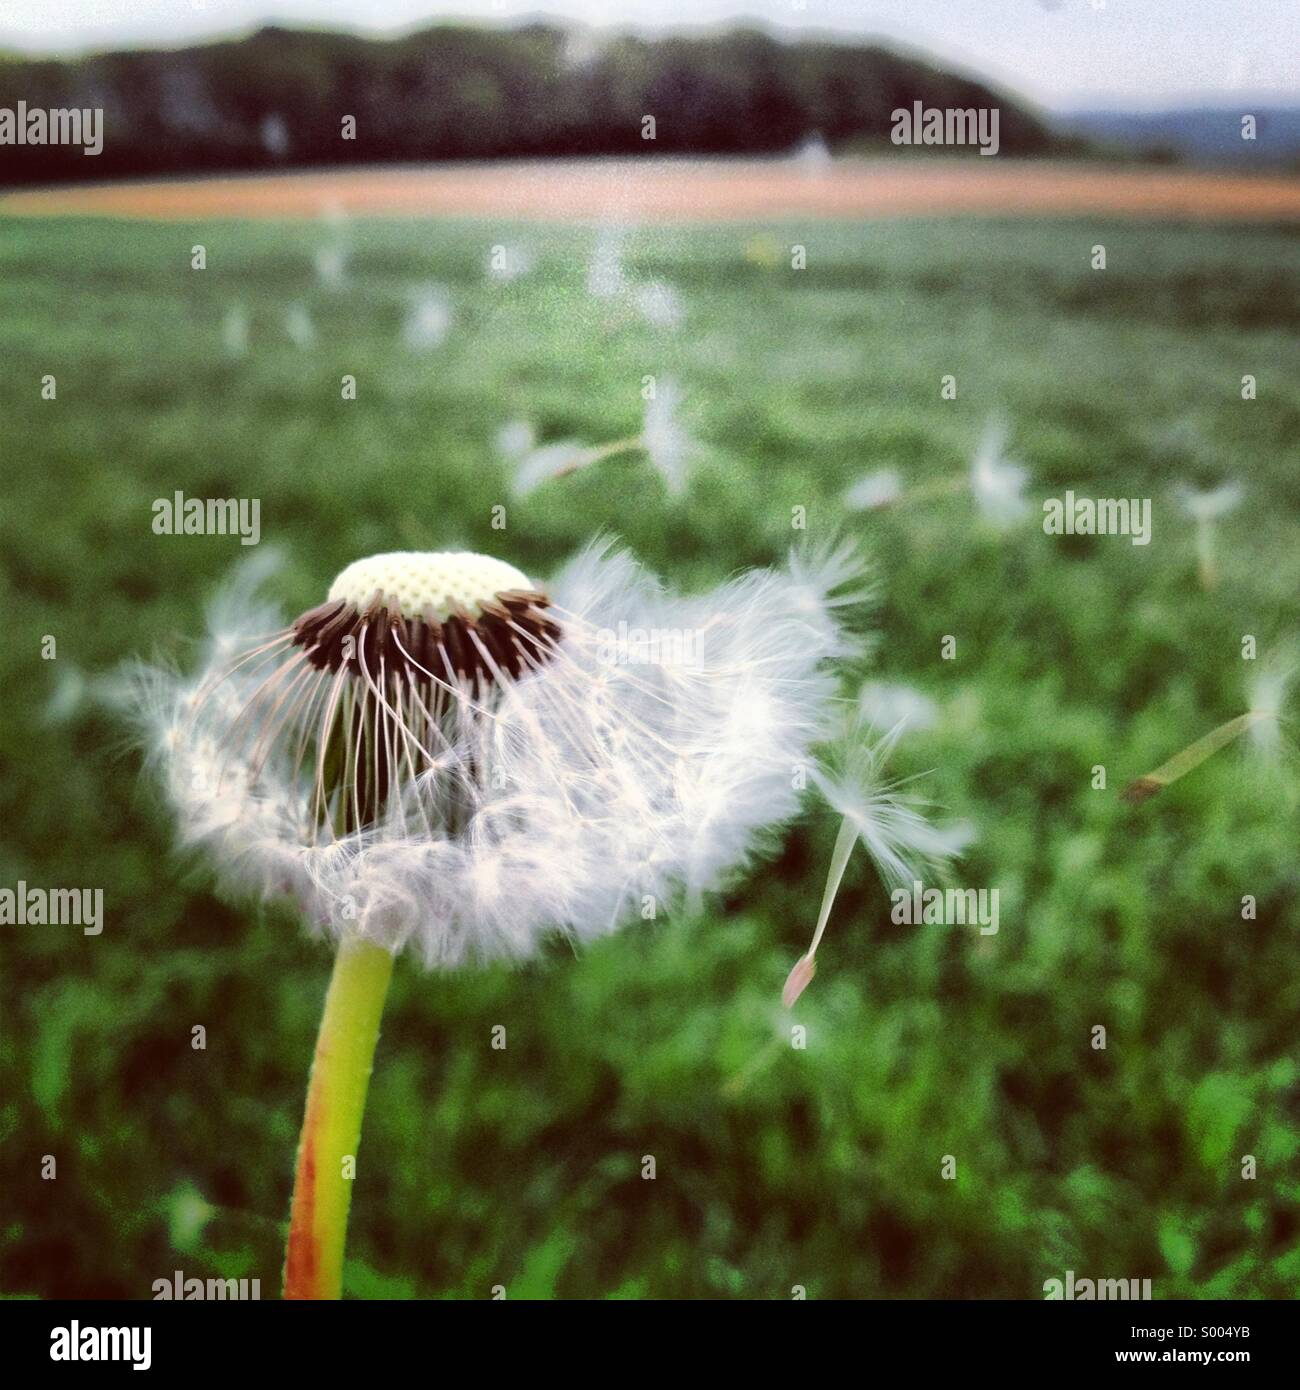 Dandelion in the wind - Stock Image